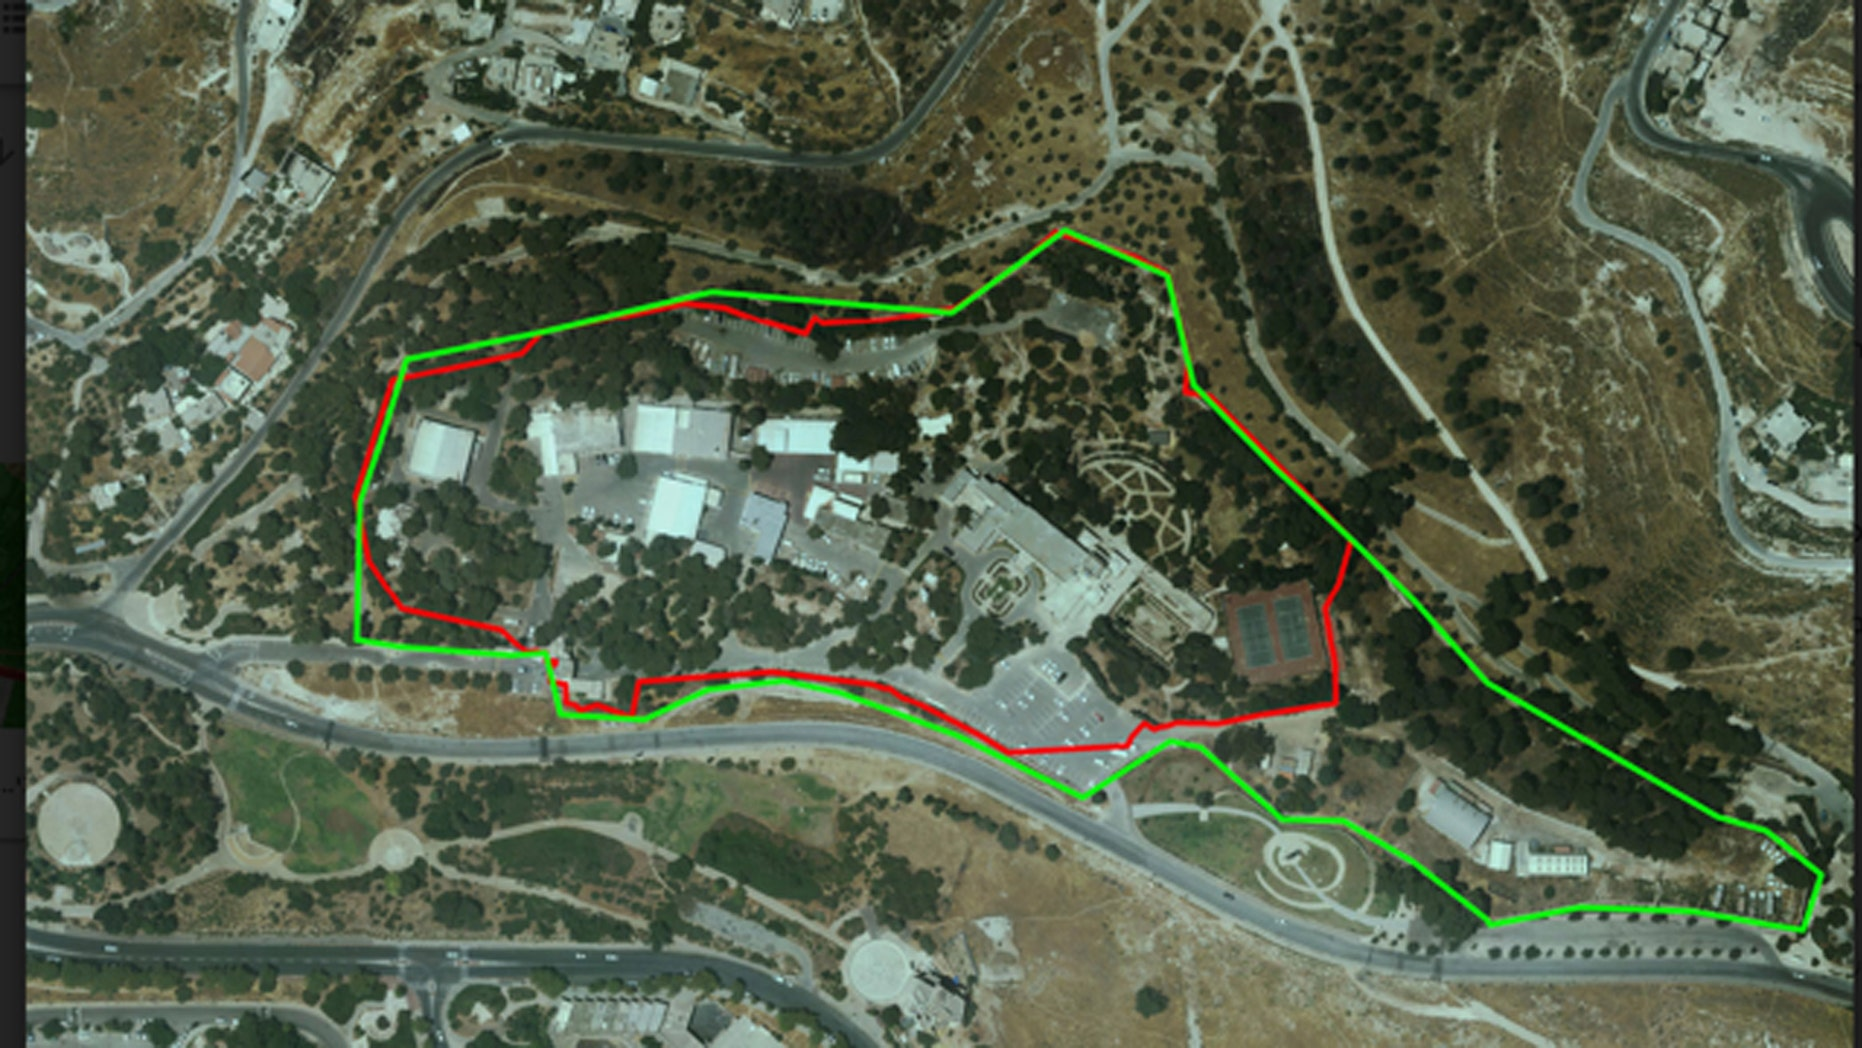 An aerial view of the U.N. compound as it looks today. The green line is the current compound, the red line marks the original dimensions allotted by the Israeli government for use by the U.N. It has constructed additional buildings, a gas station, storage facilities, and more: all without building permits or oversight of any kind. (Regavim)